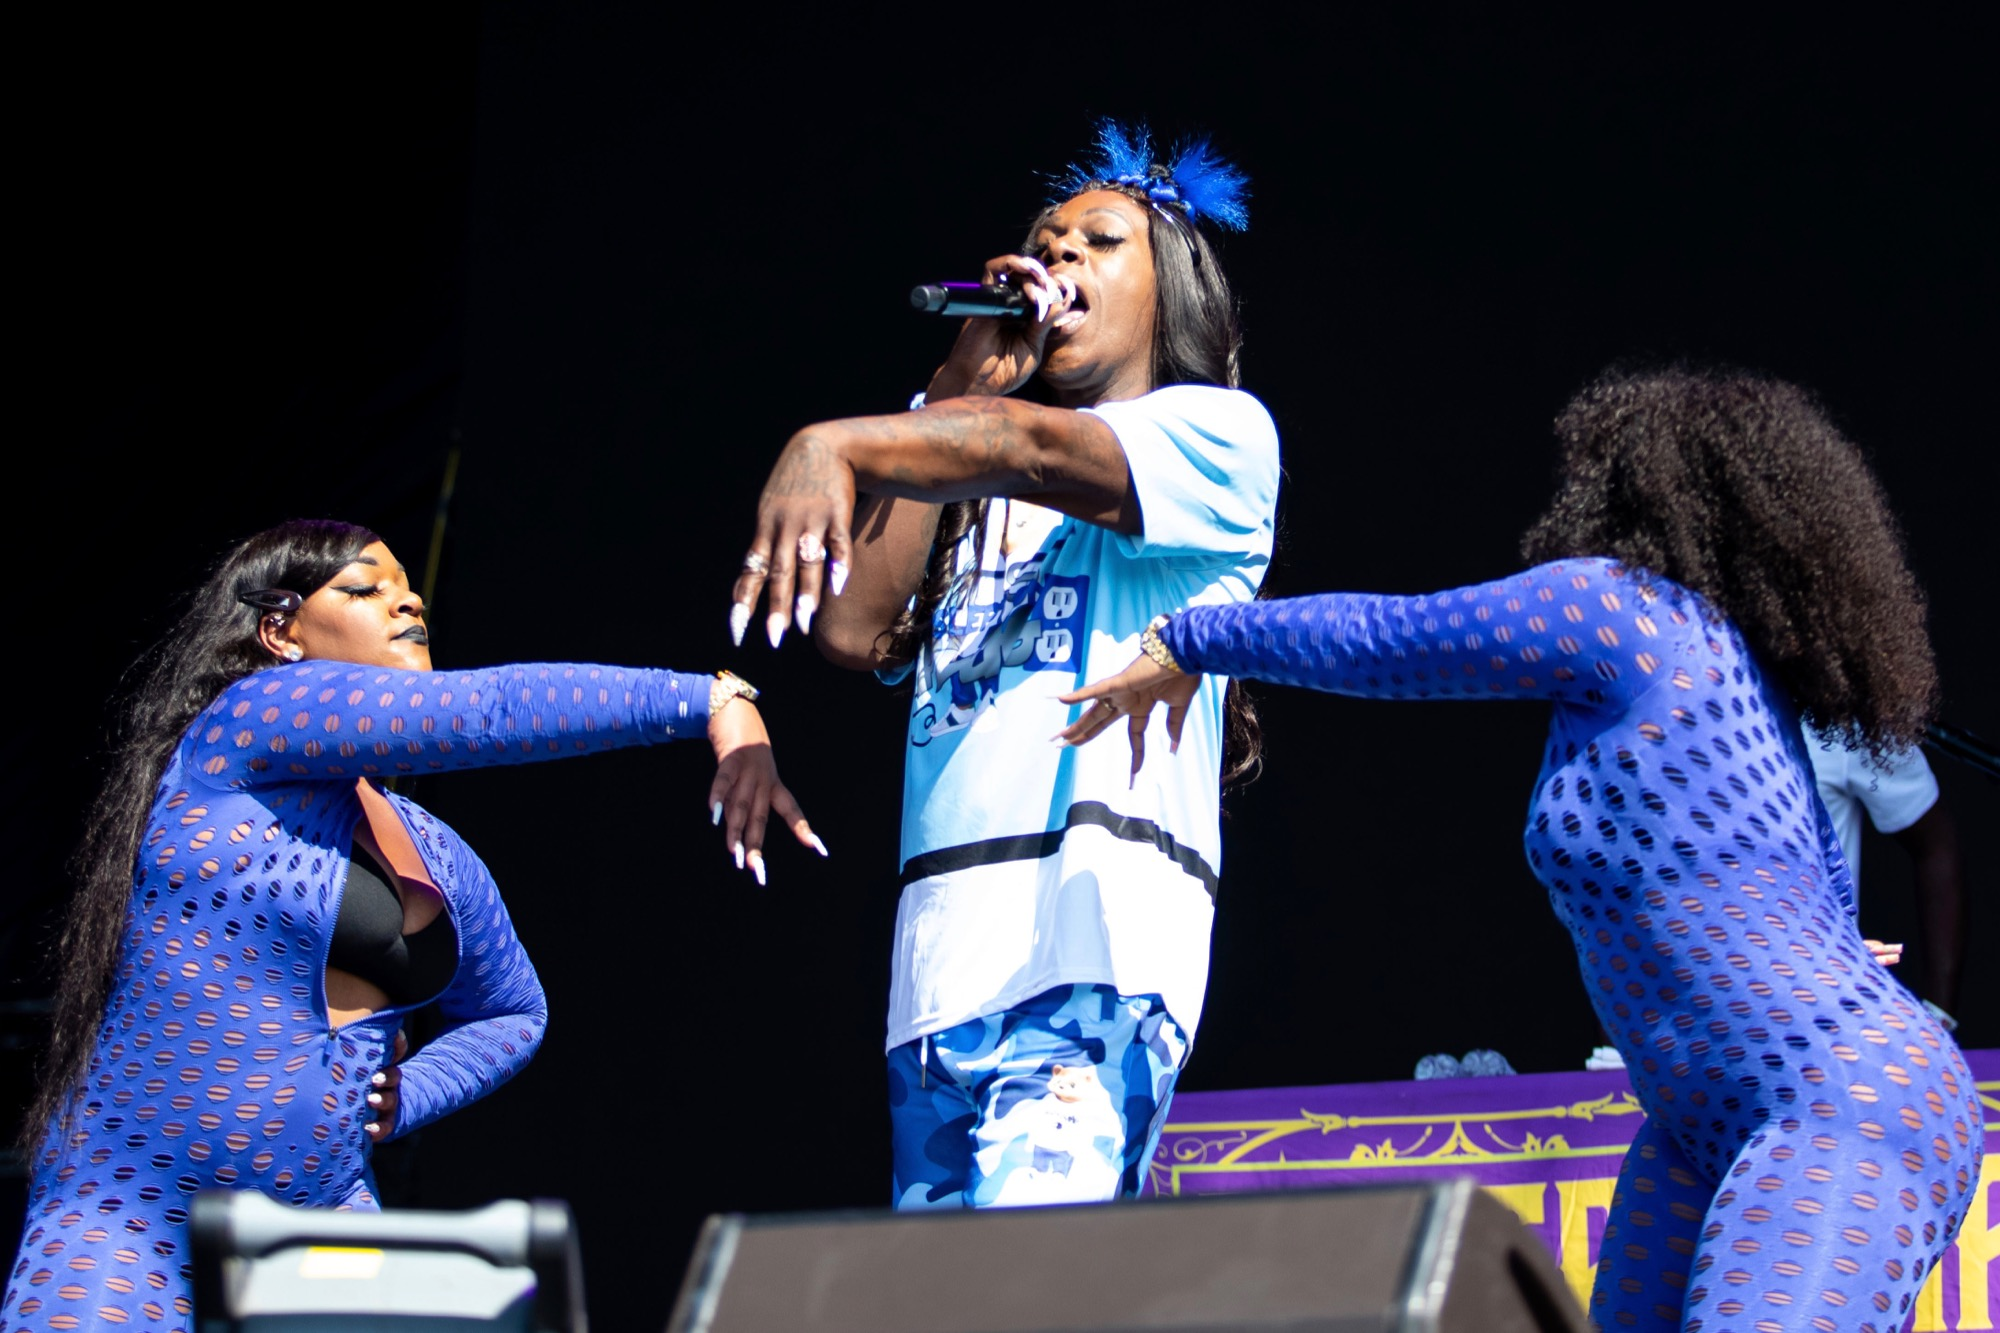 Big Freedia performs at Riot Fest in Chicago on Sept. 18, 2021.